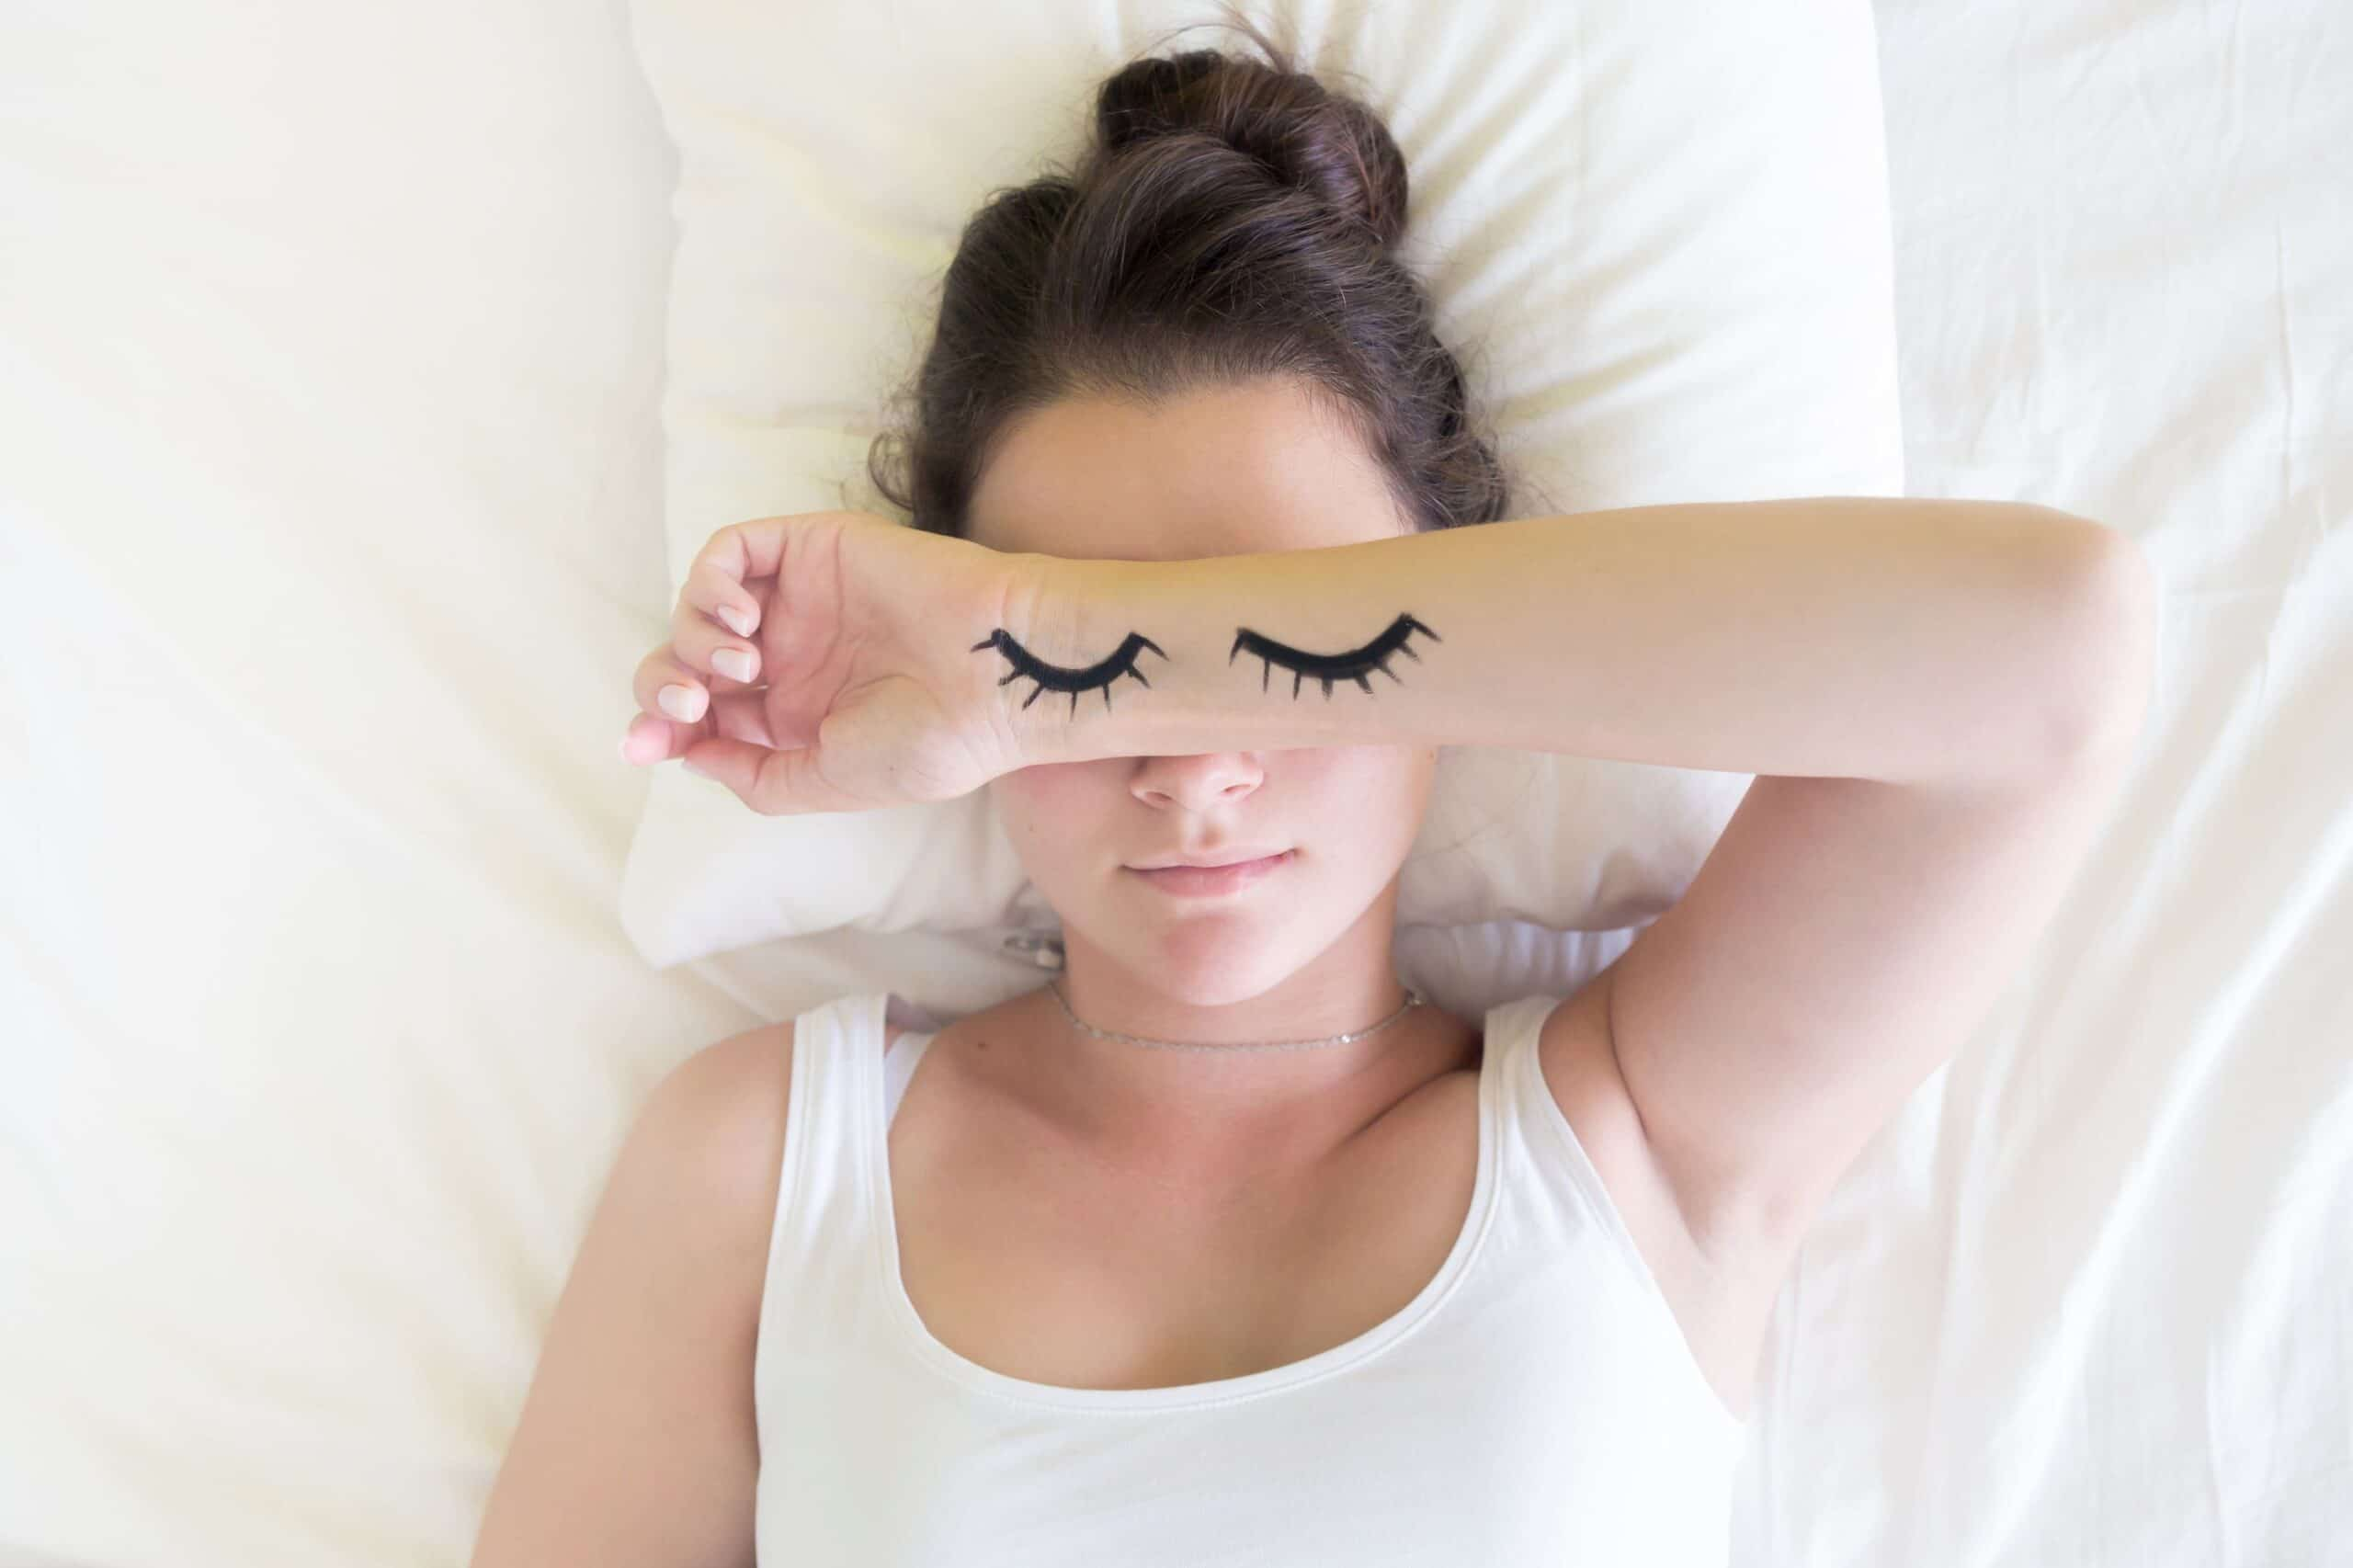 woman sleeps with eyes drawn on arm scaled